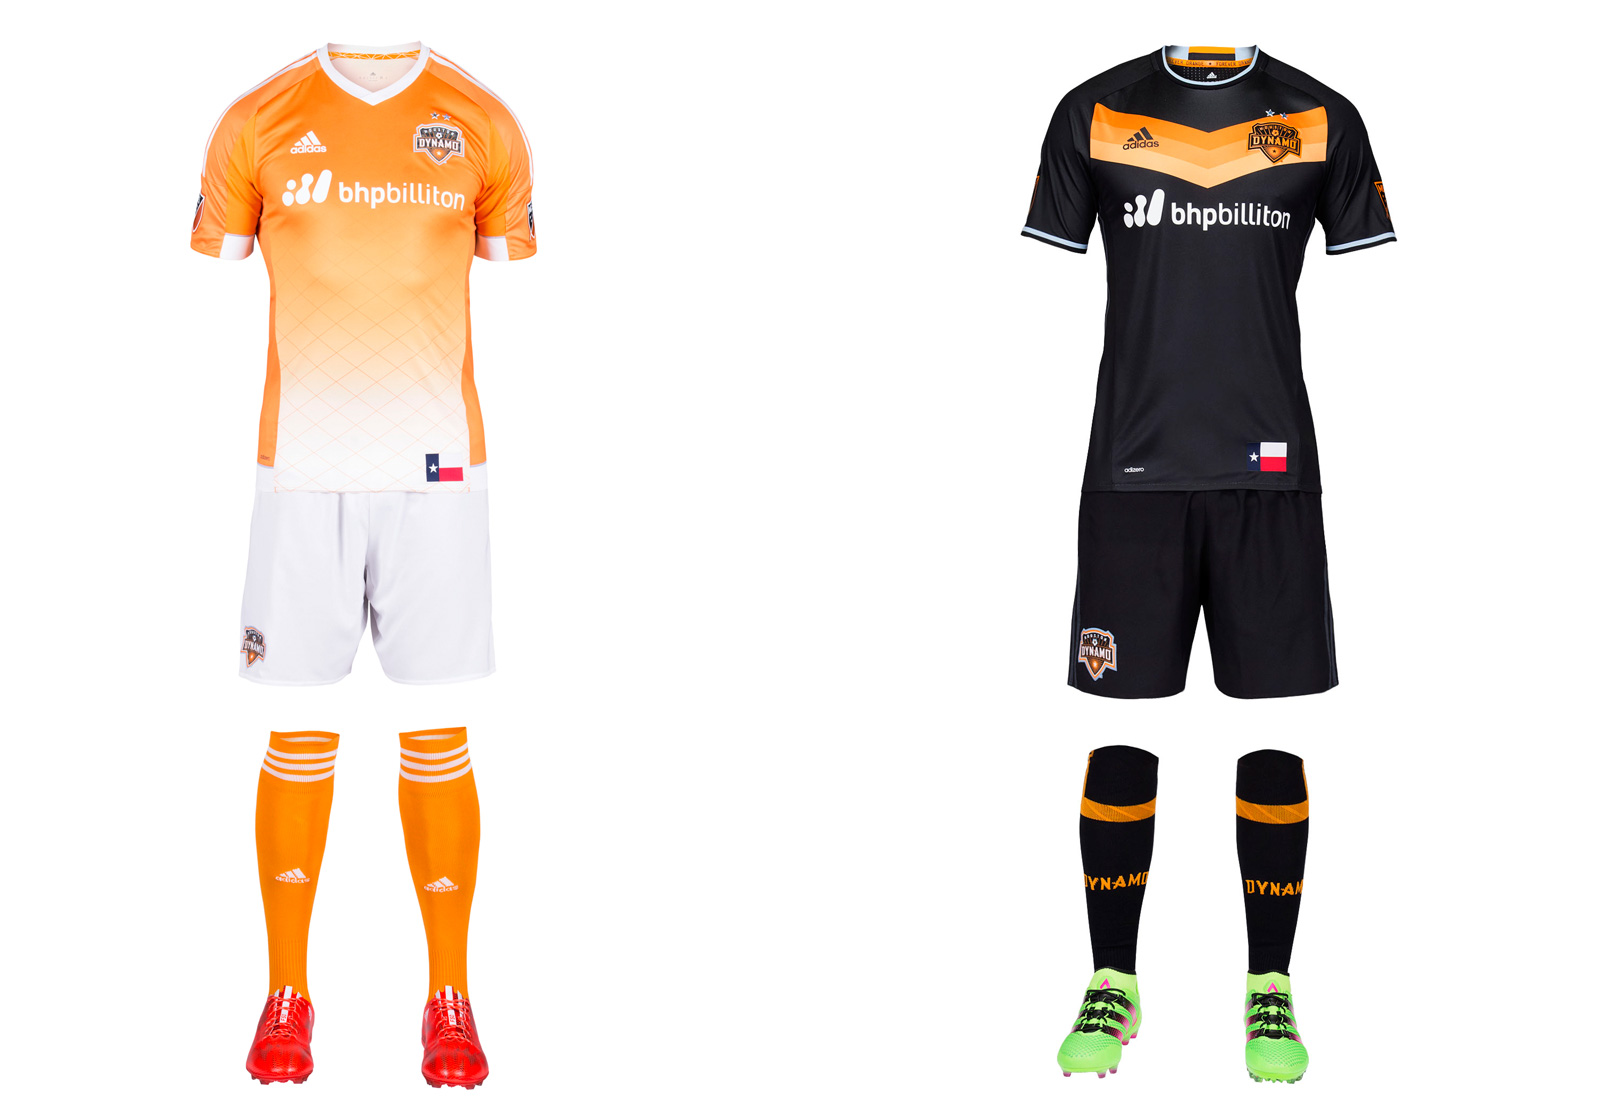 "Houston's new away uniform is a stunning departure from the traditional white. Black has been part of the club's palette (check the logo). It now dominates the secondary kit save for a bright orange chevron on the chest reminiscent of the Astros' famous ""Tequila Sunrise"" jerseys and the shirts Germany wore when winning the 2014 World Cup. We may not see the black too often at home (it's hot and humid in Houston), but it should sell well. The orange fade on the primary set carries over from 2015. The Dynamo occasionally wear mono-orange, which is a mistake. The white shorts remain the way to go."